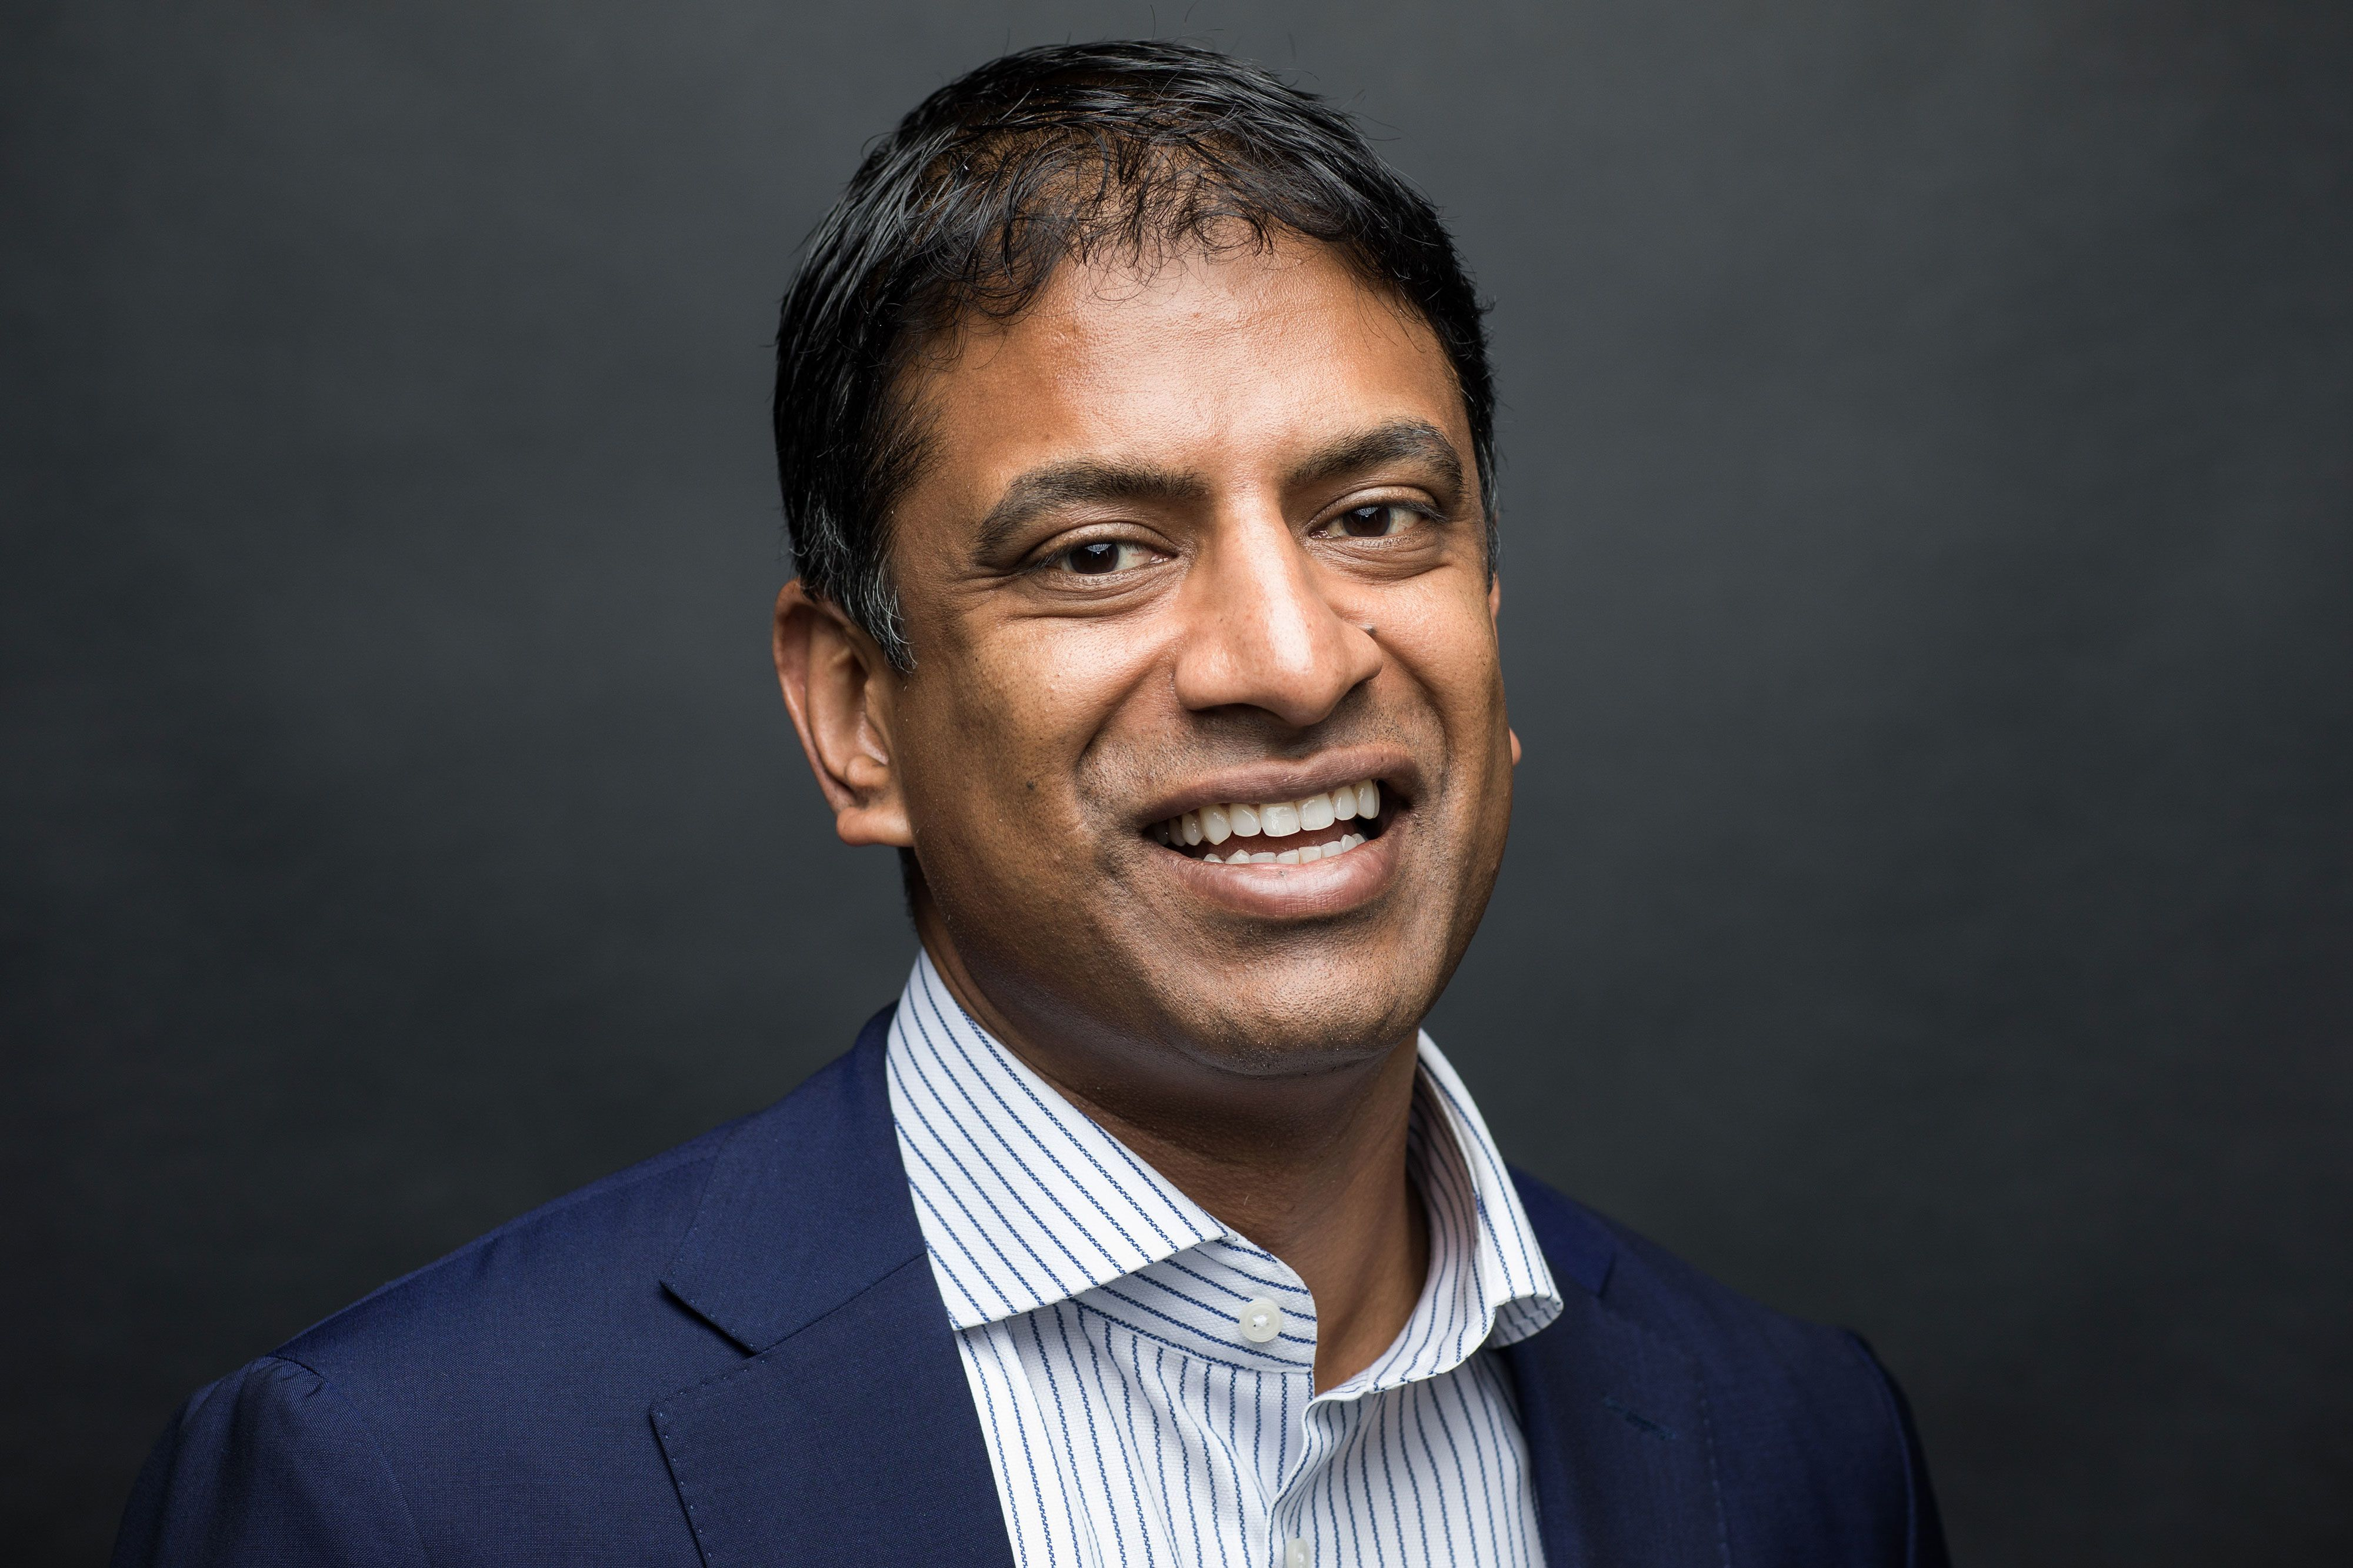 Novartis CEO says gene therapies to upend US health system